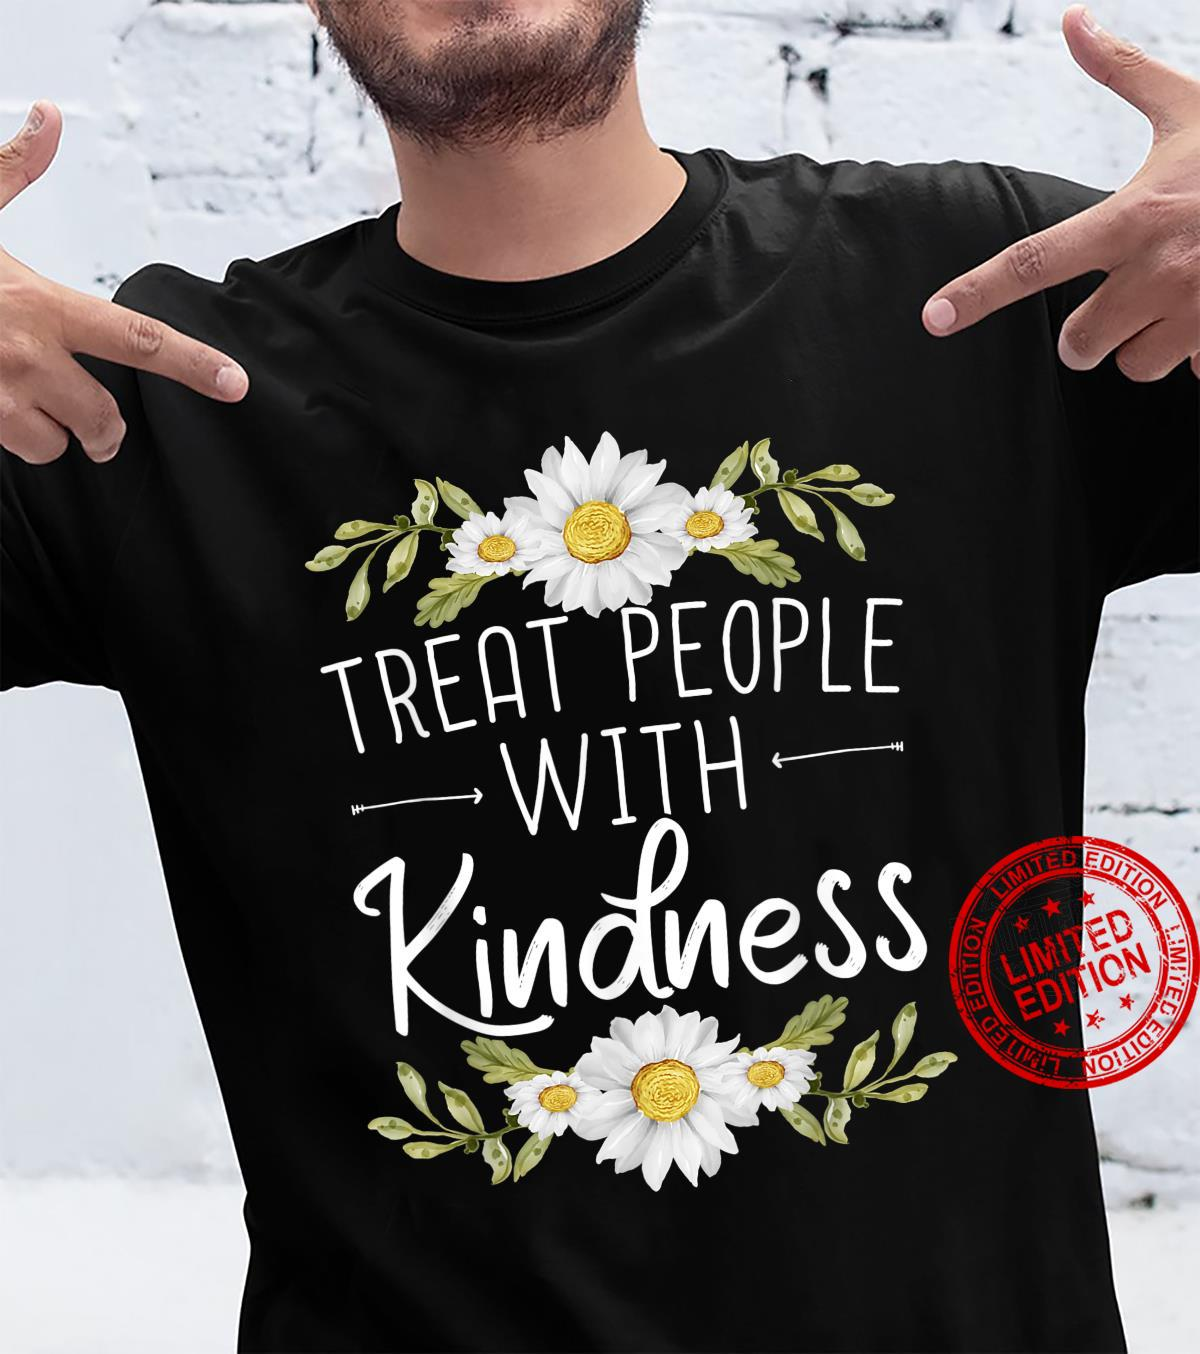 Treat People With Kindness for a Be Kinds Shirt